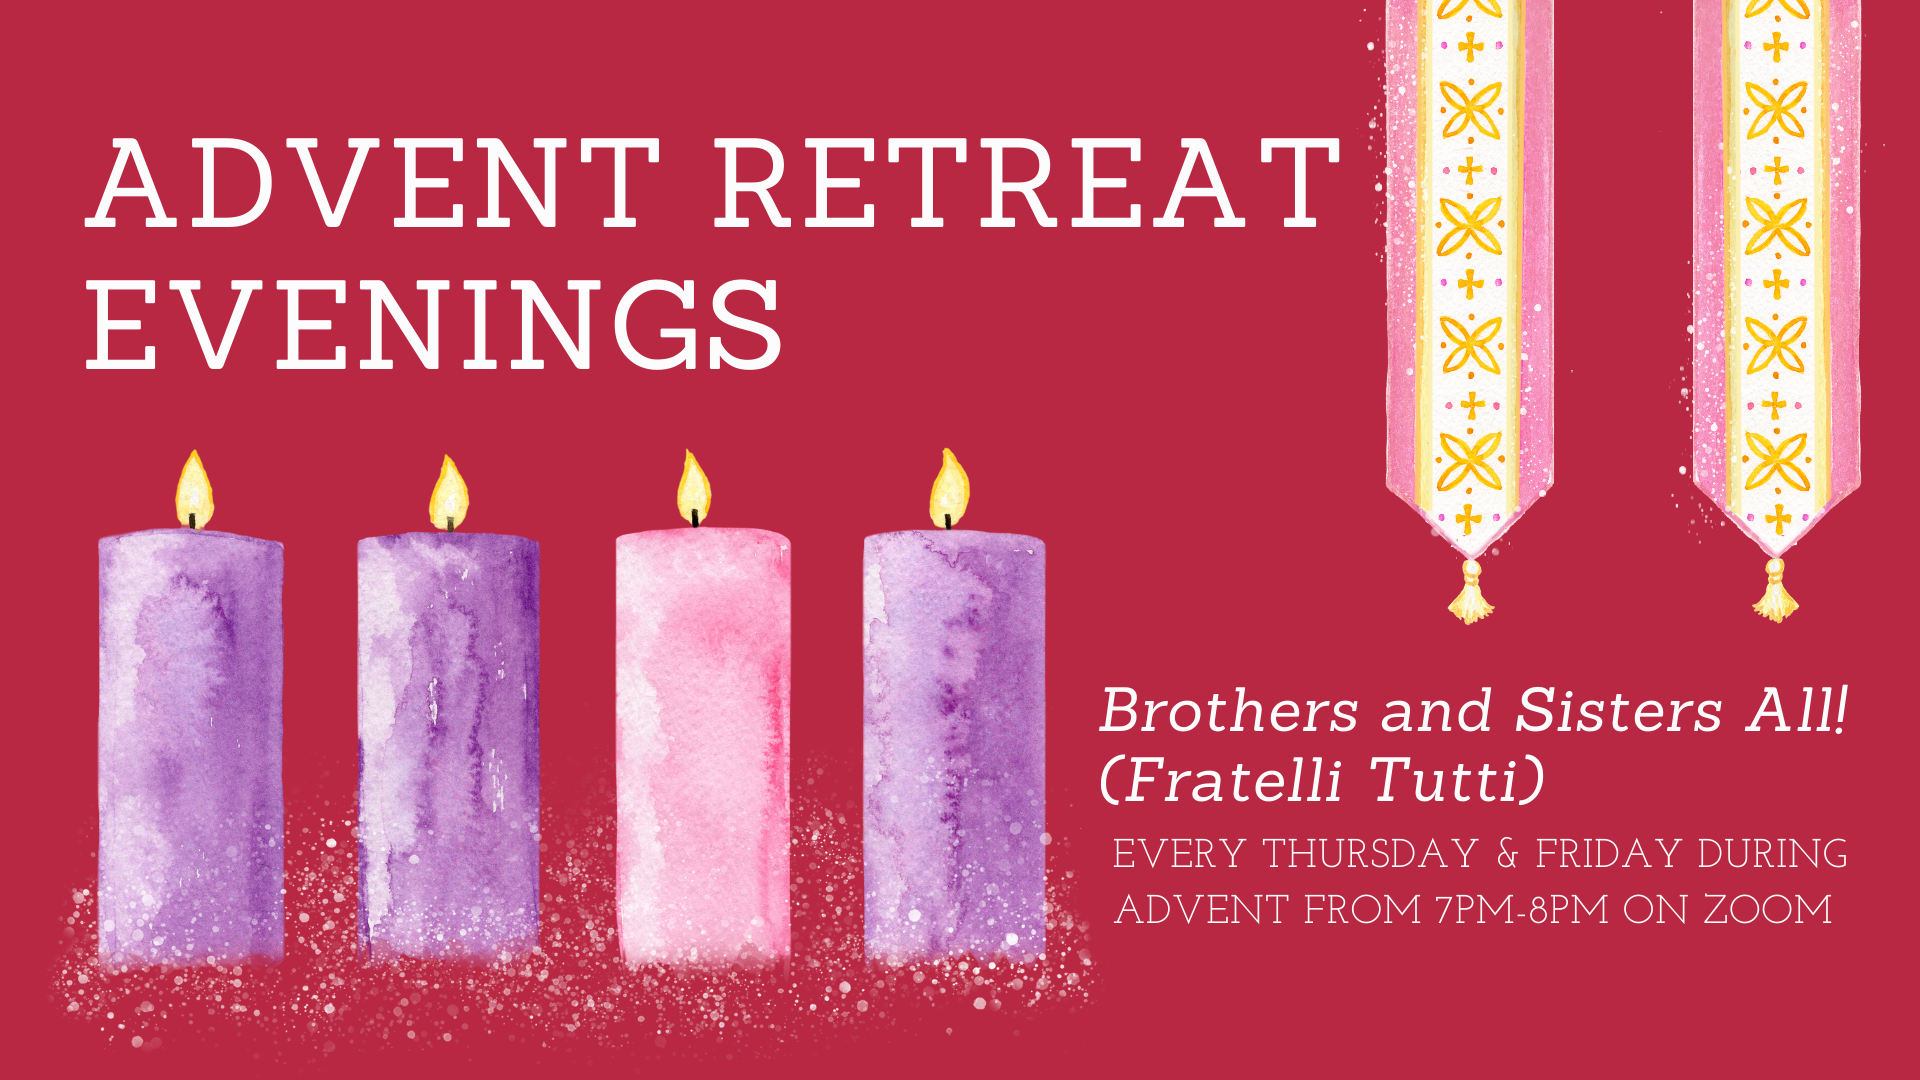 Advent Retreat Evenings